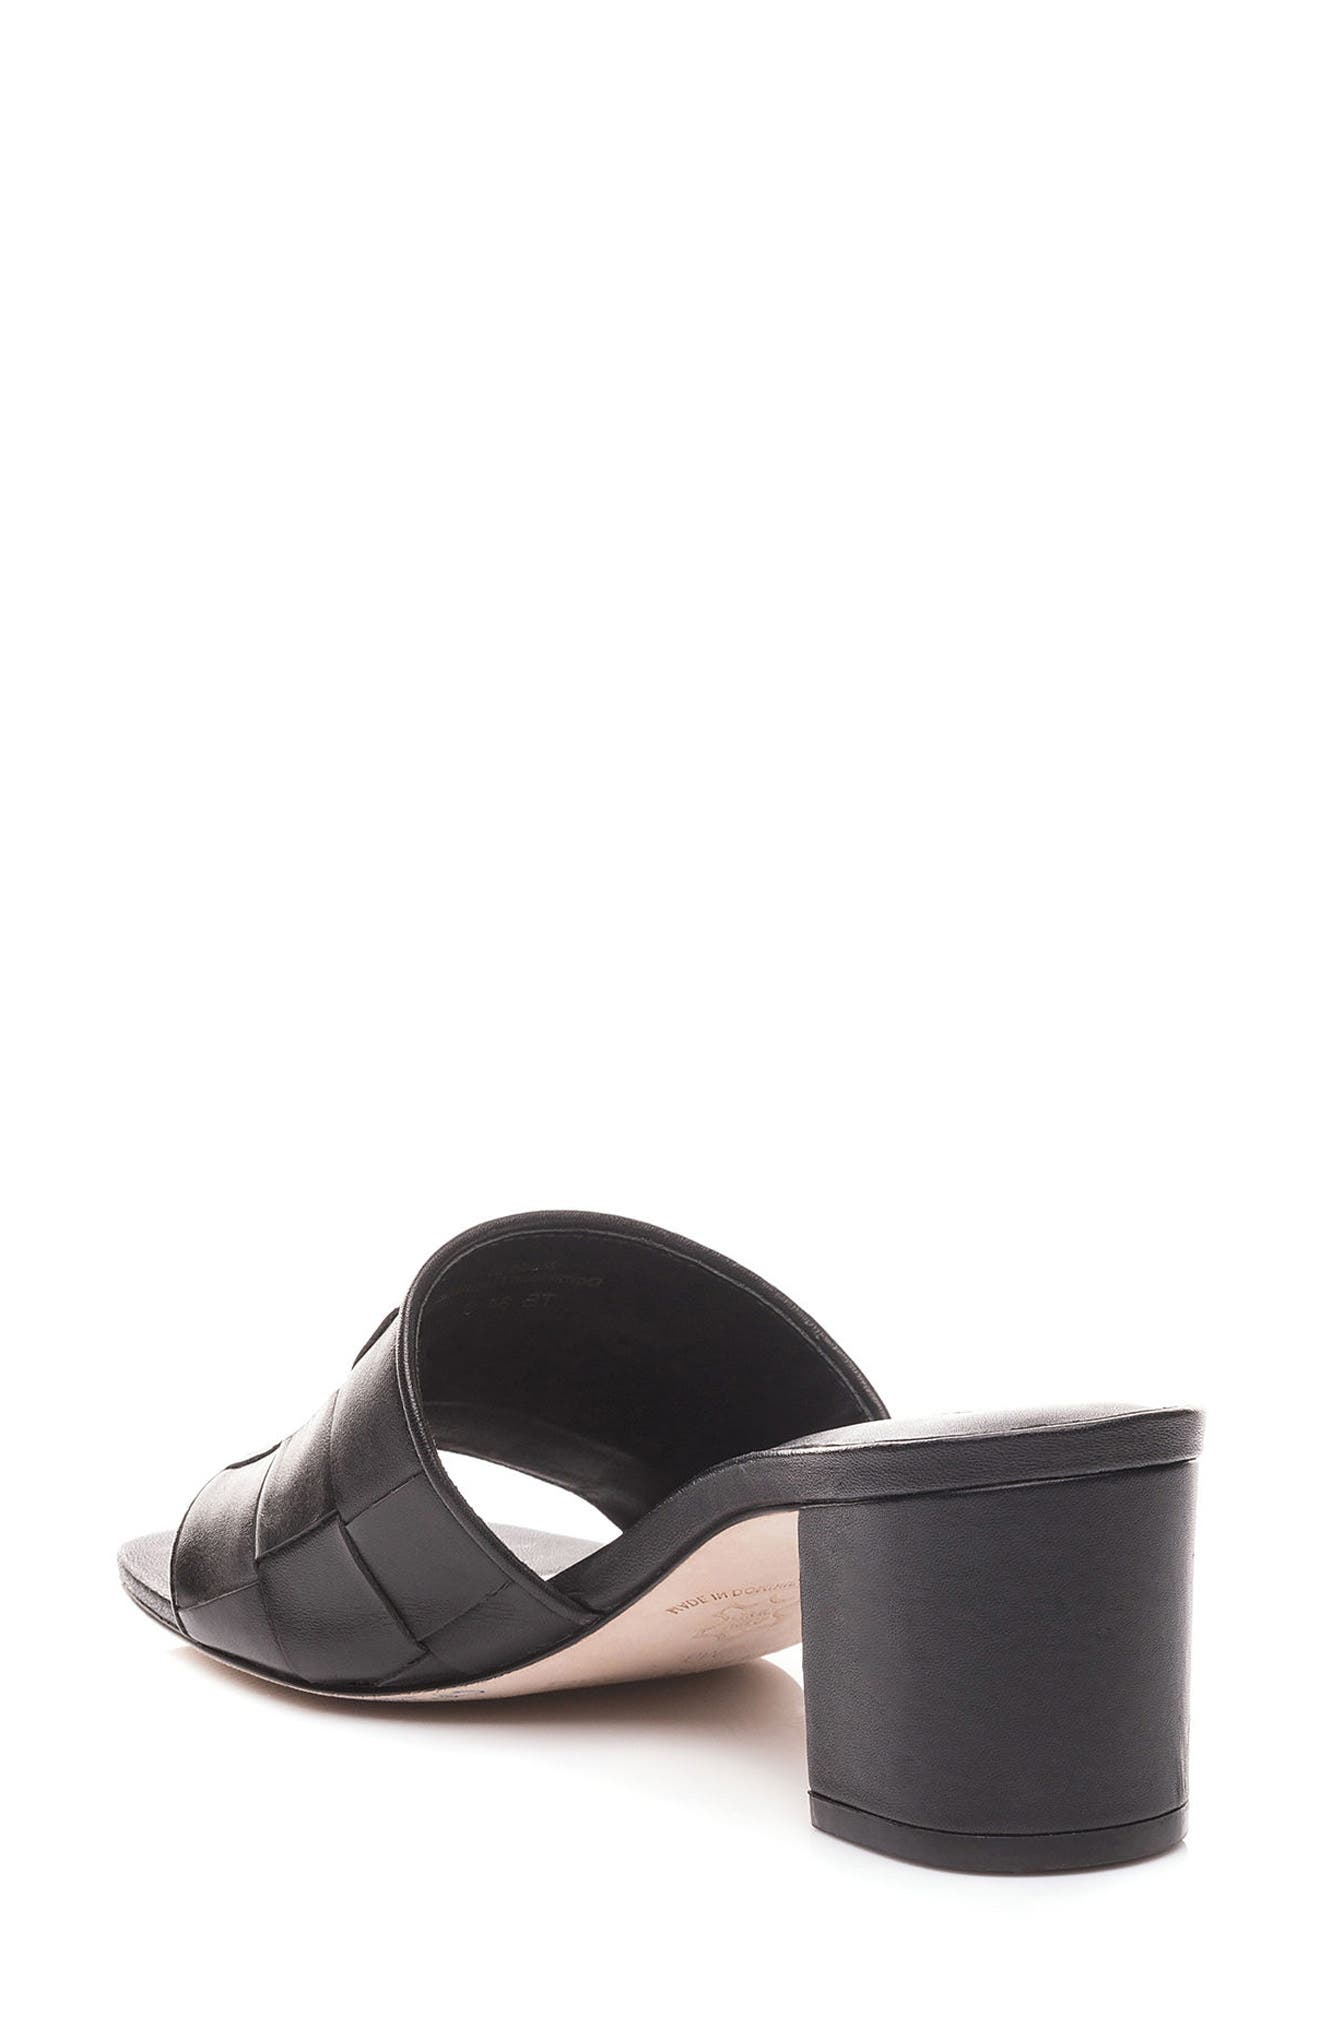 Bernardo Bridget Block Heel Sandal,                             Alternate thumbnail 2, color,                             001